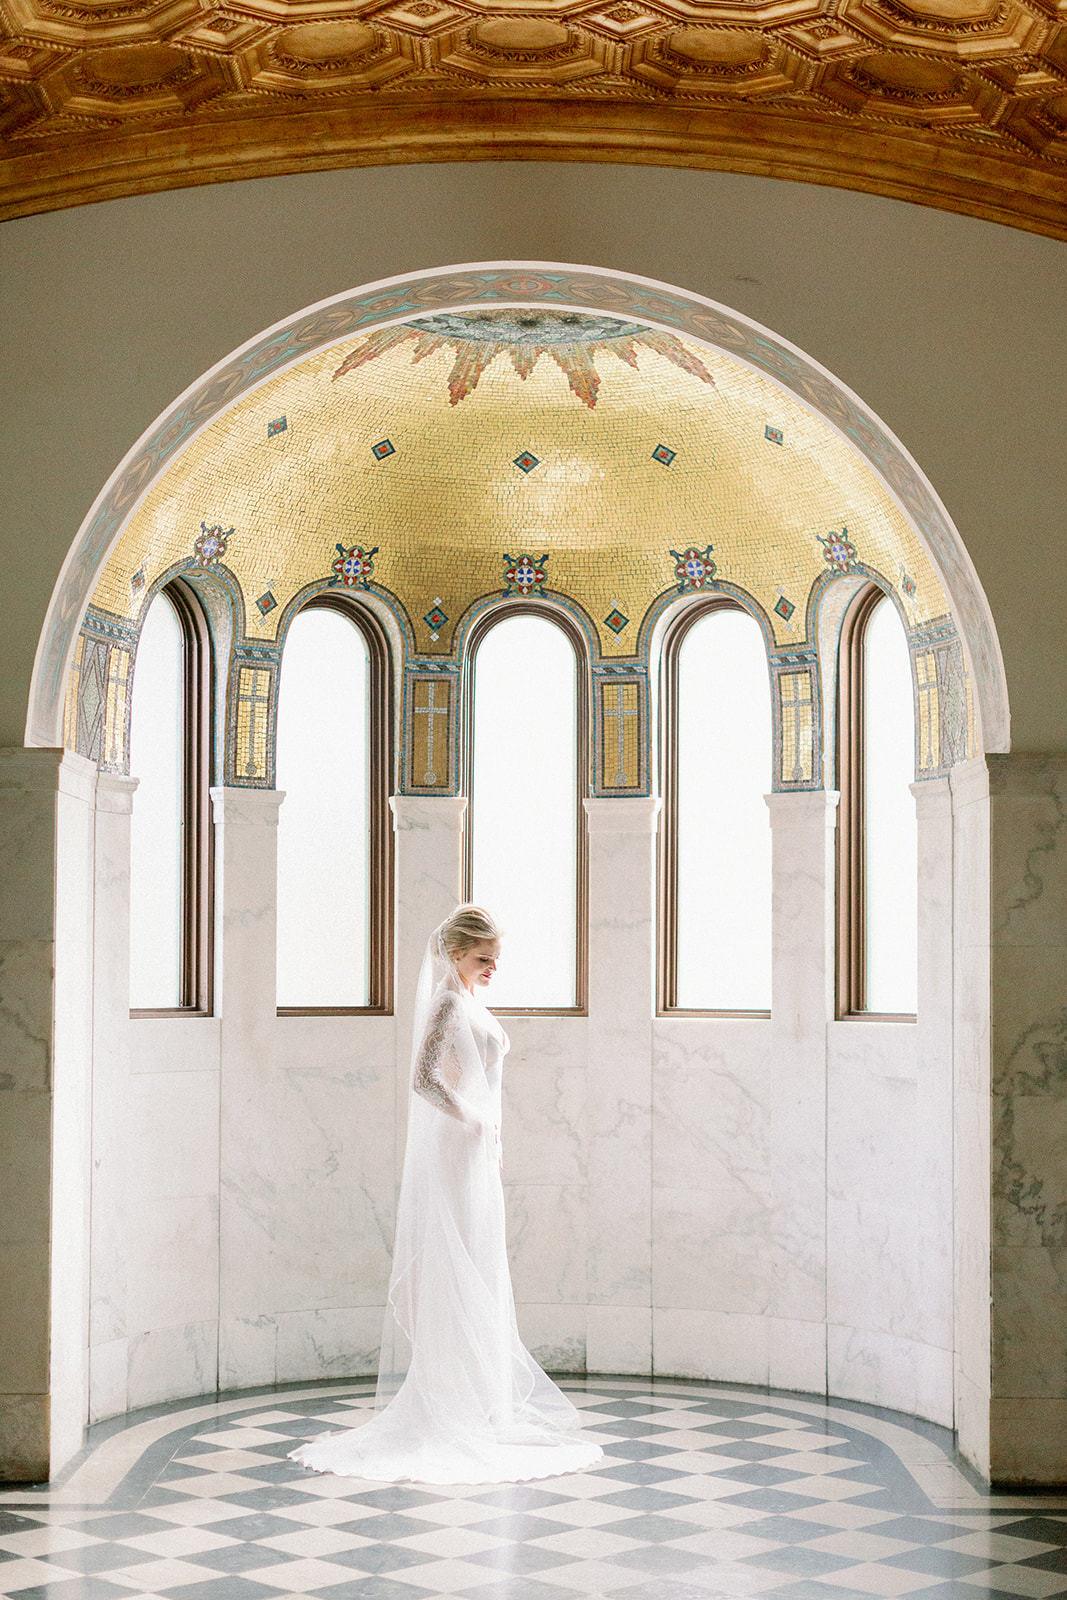 bride standing in elegant cathedral arch